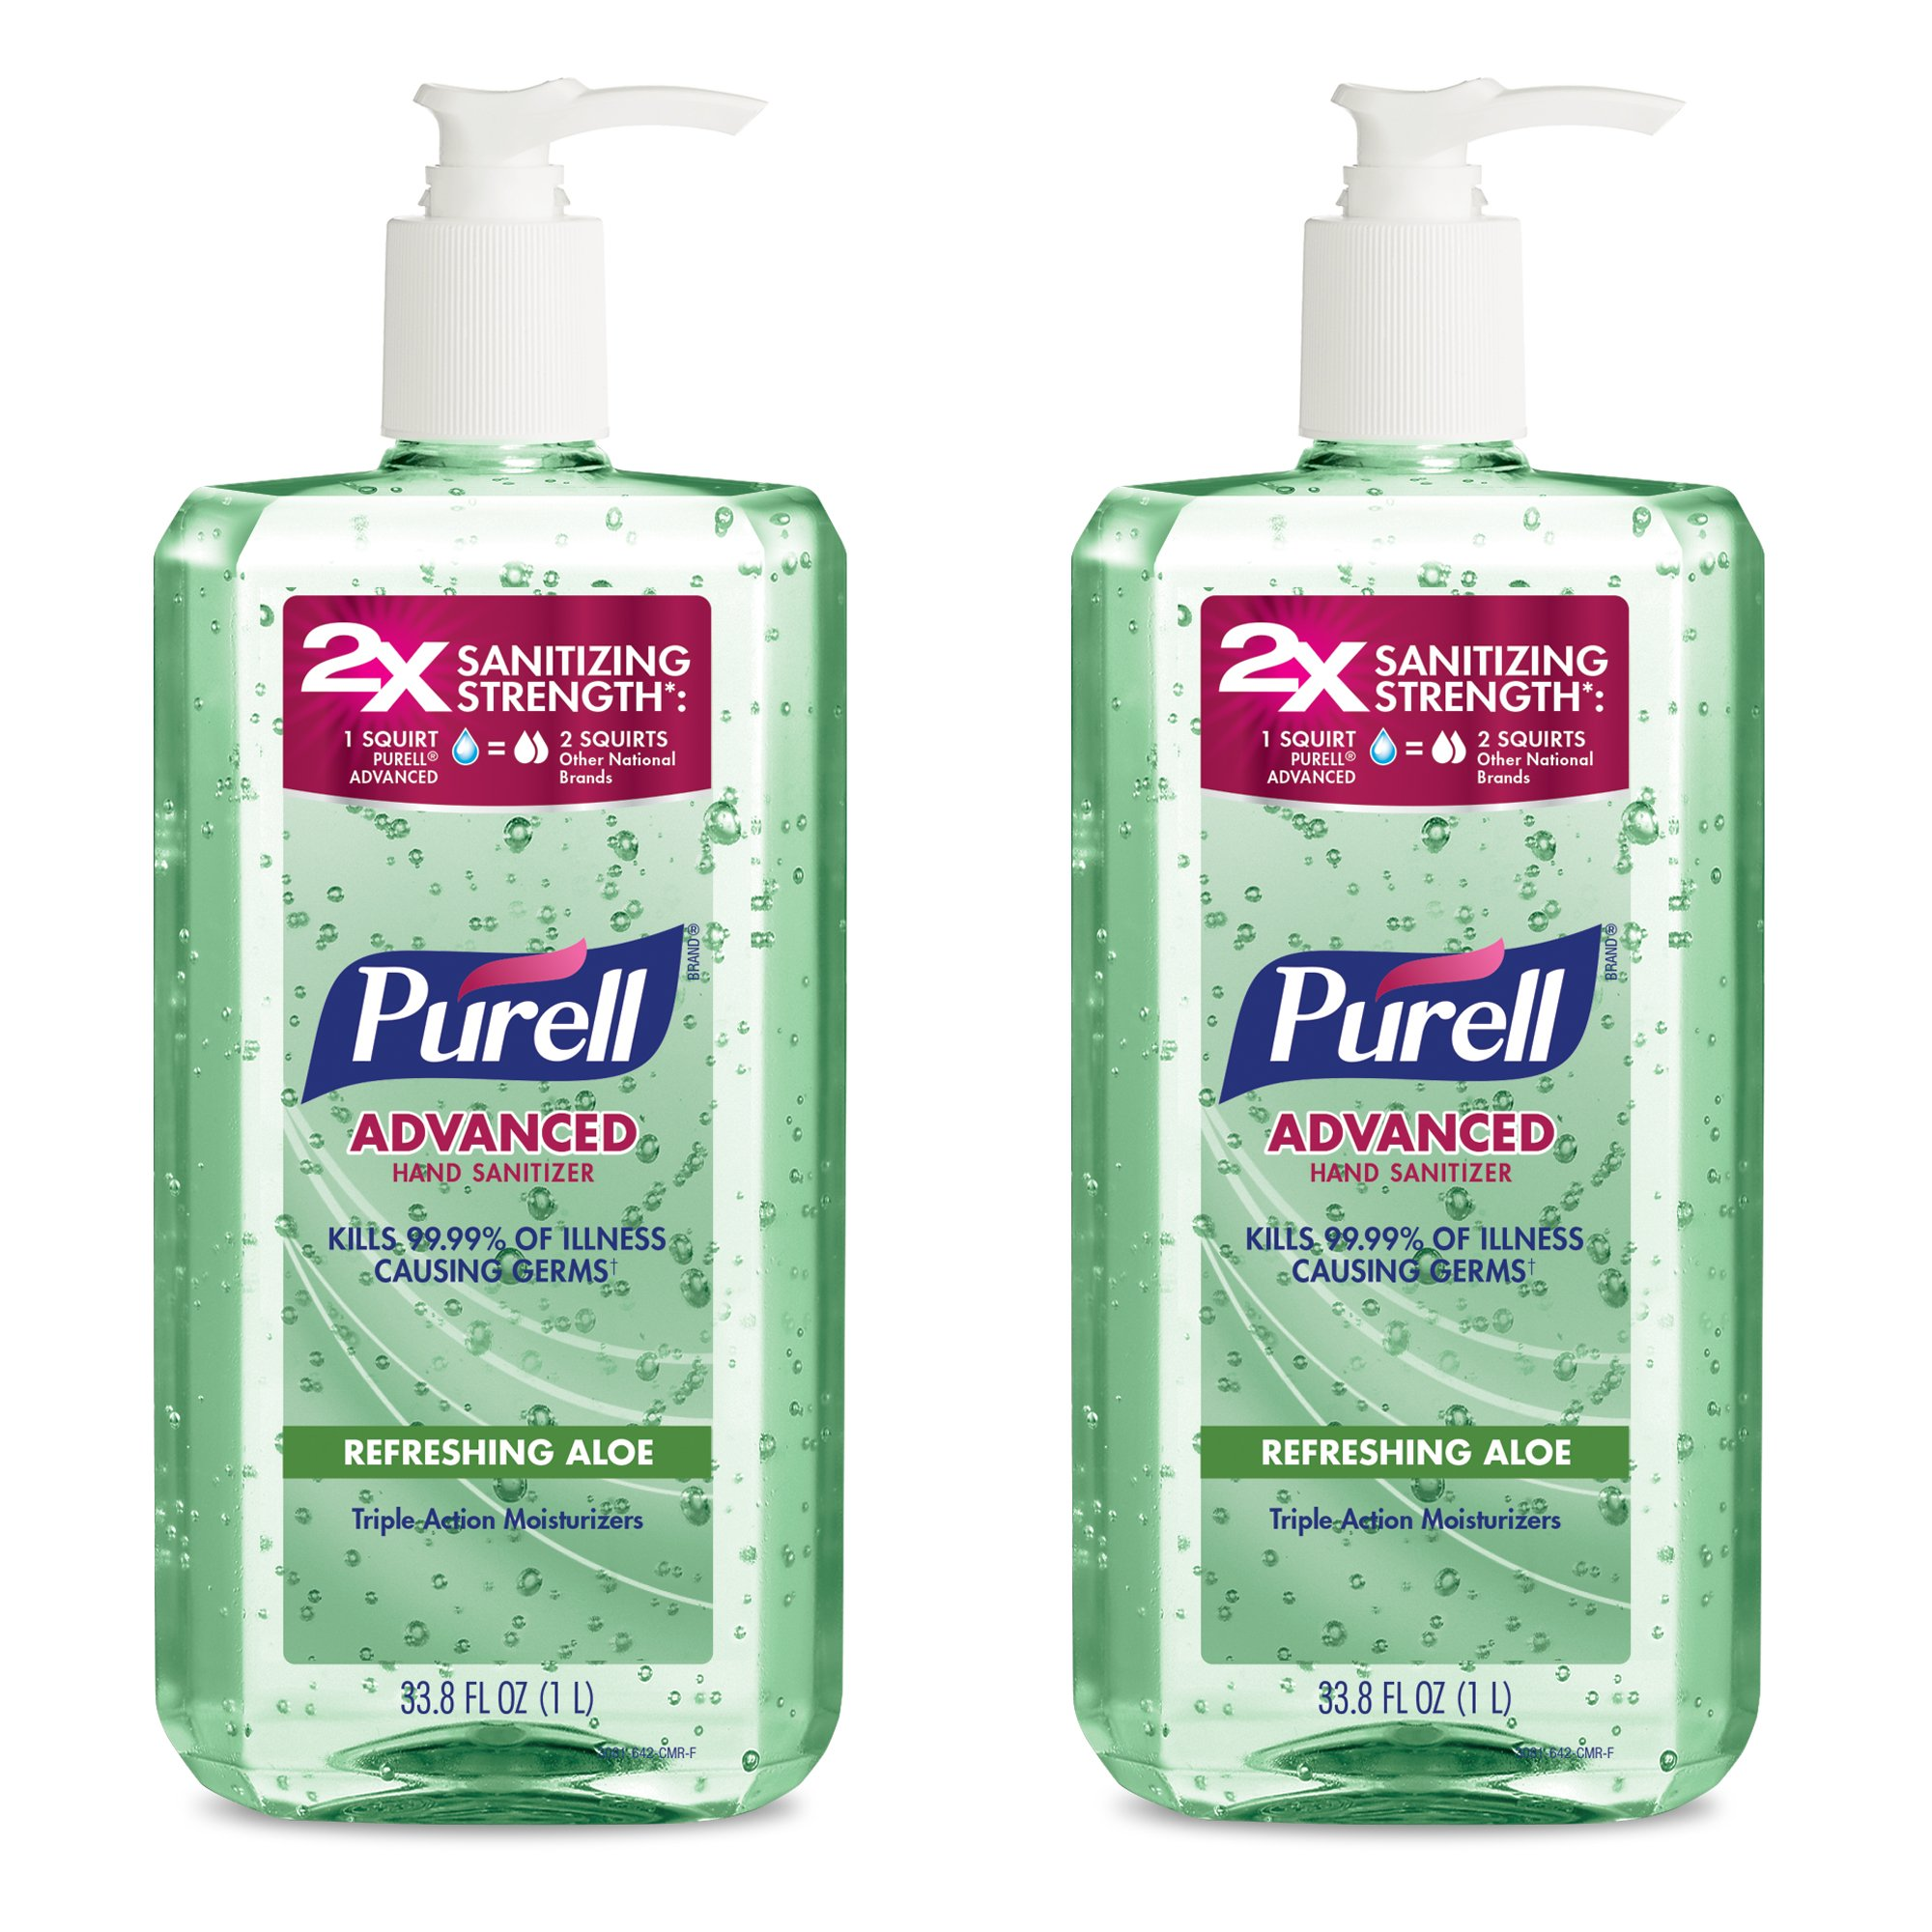 PURELL 3081-02-EC Advanced Hand Sanitizer - Hand Sanitizer Gel with Refreshing Aloe, 1L Pump Bottle (Pack of 2)